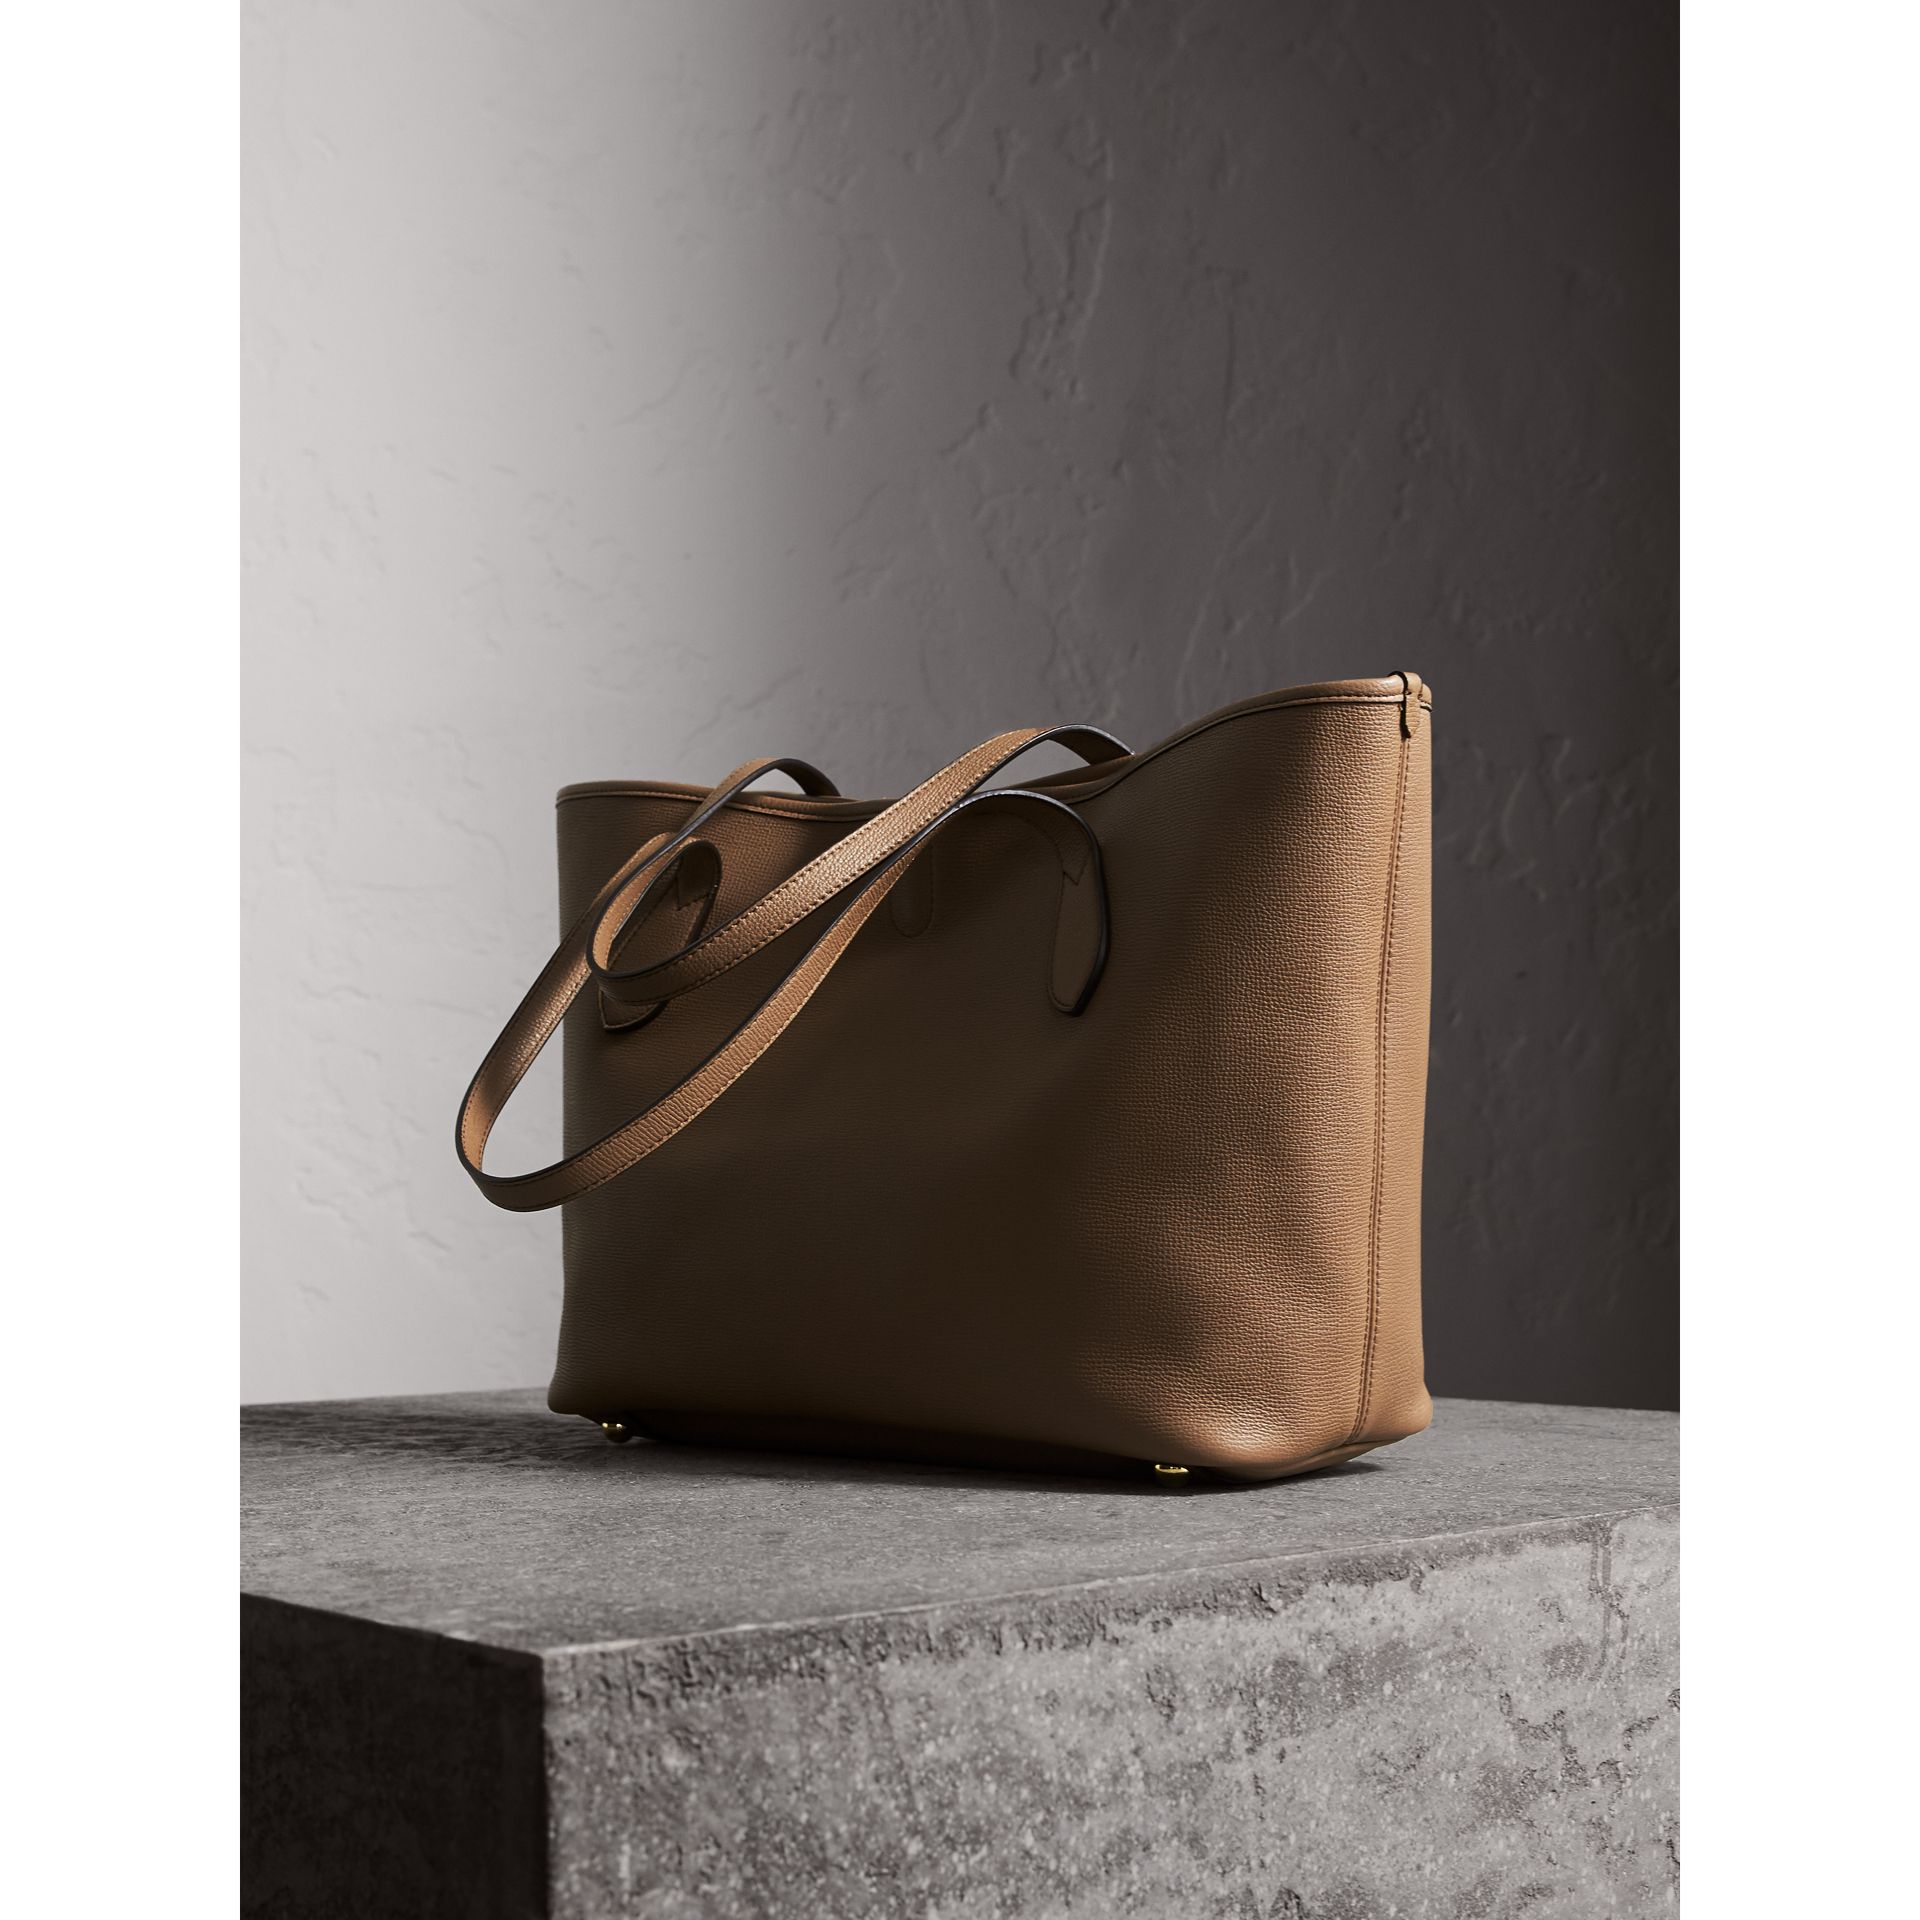 Medium Grainy Leather Tote Bag in Dark Sand - Women | Burberry Australia - gallery image 5